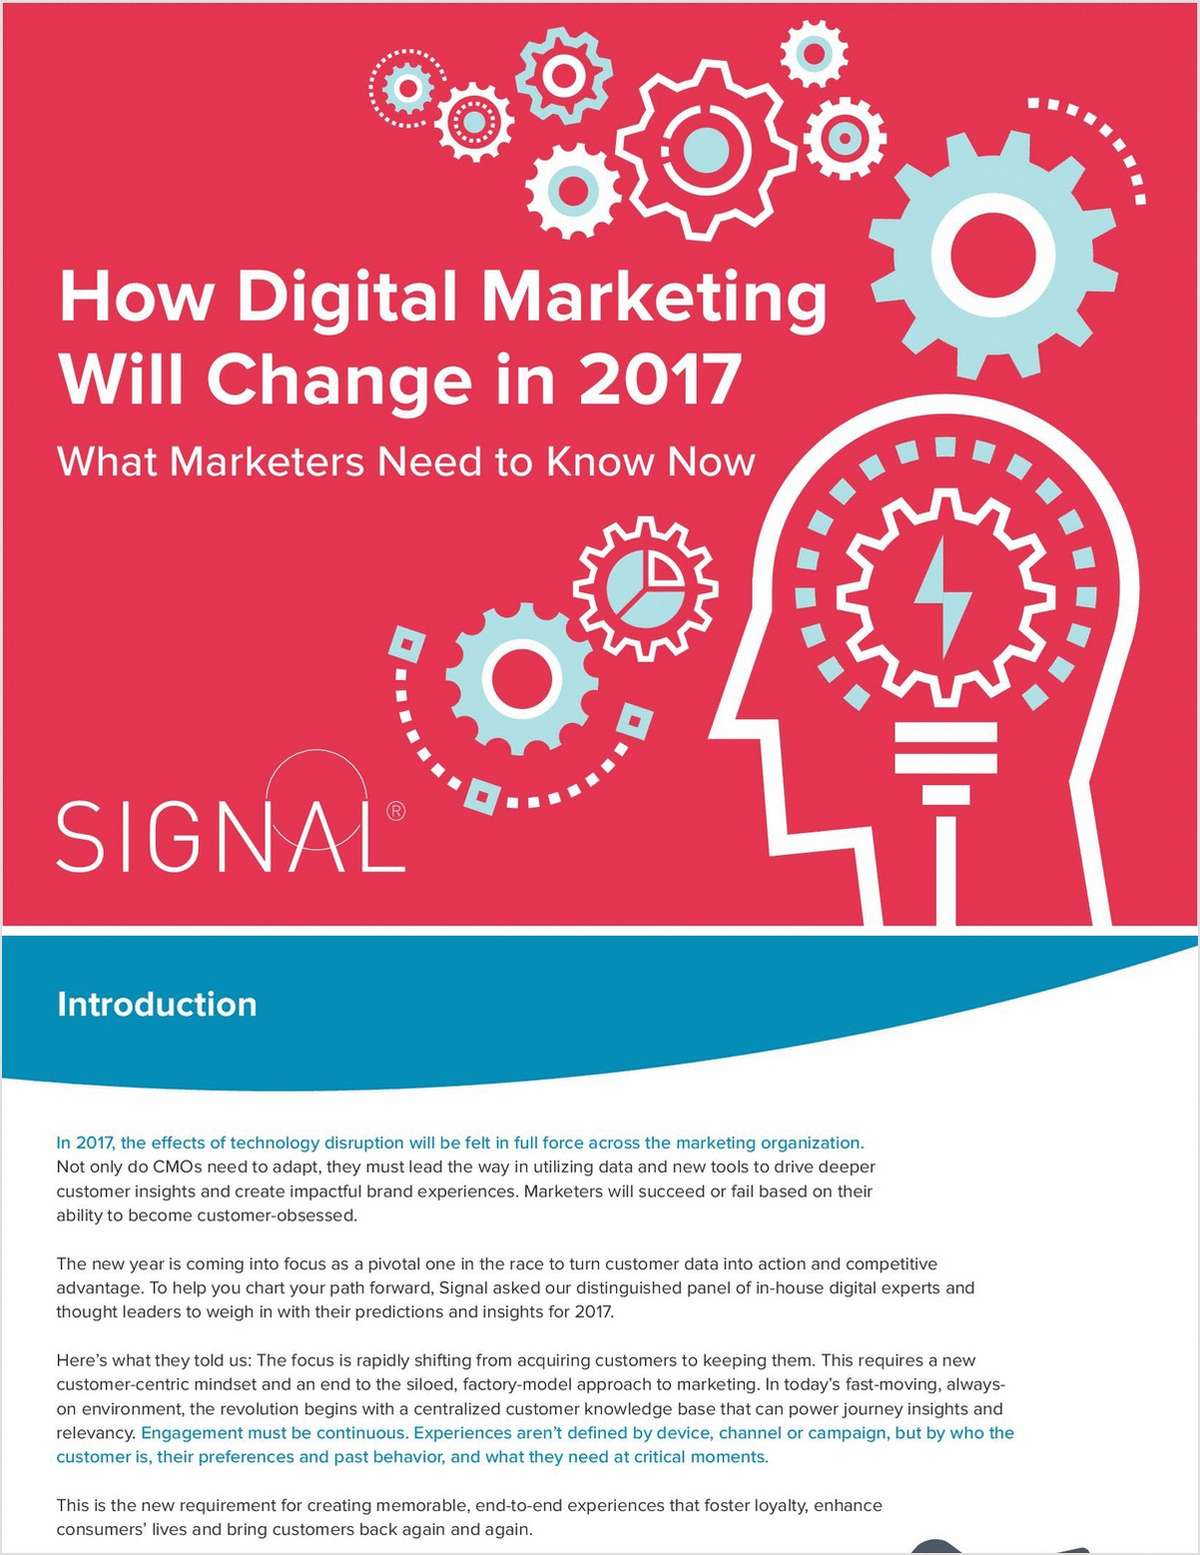 How Digital Marketing Will Change in 2017